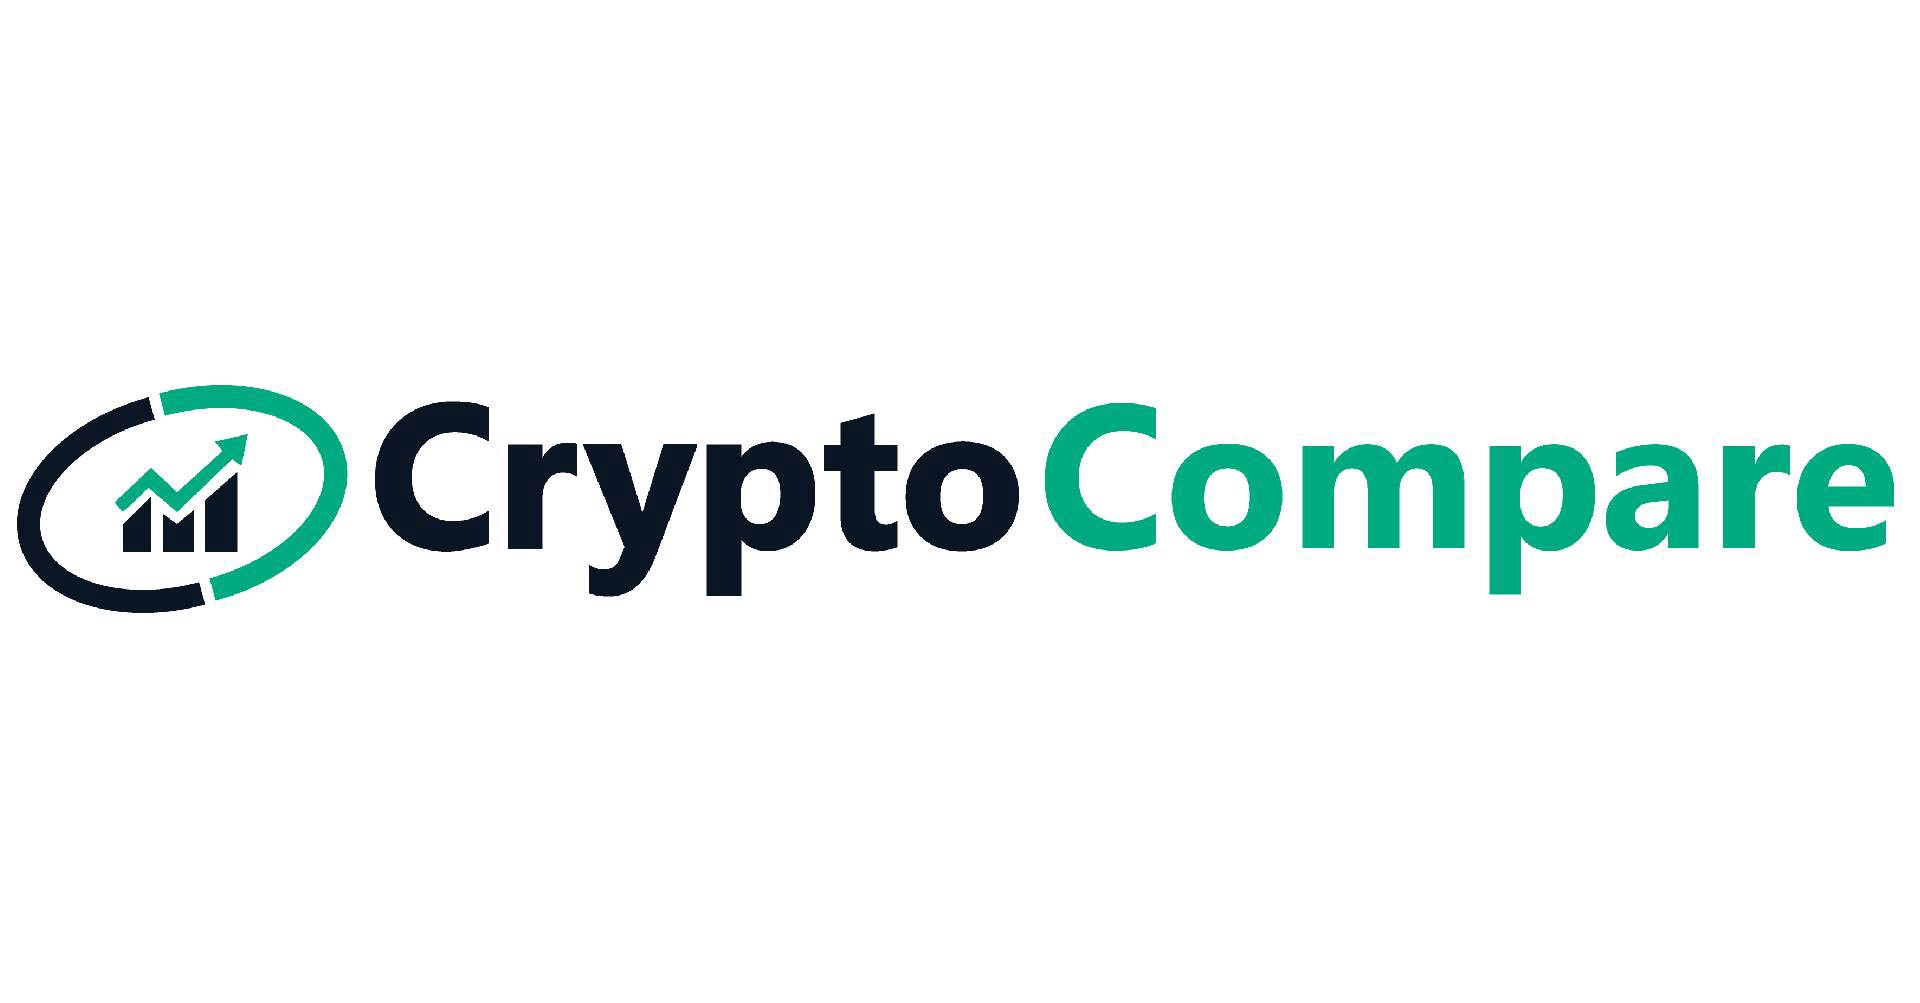 MVIS CryptoCompare Digital Assets 10 Index and MVIS CryptoCompare Digital Assets 25 Index Licensed to FTX